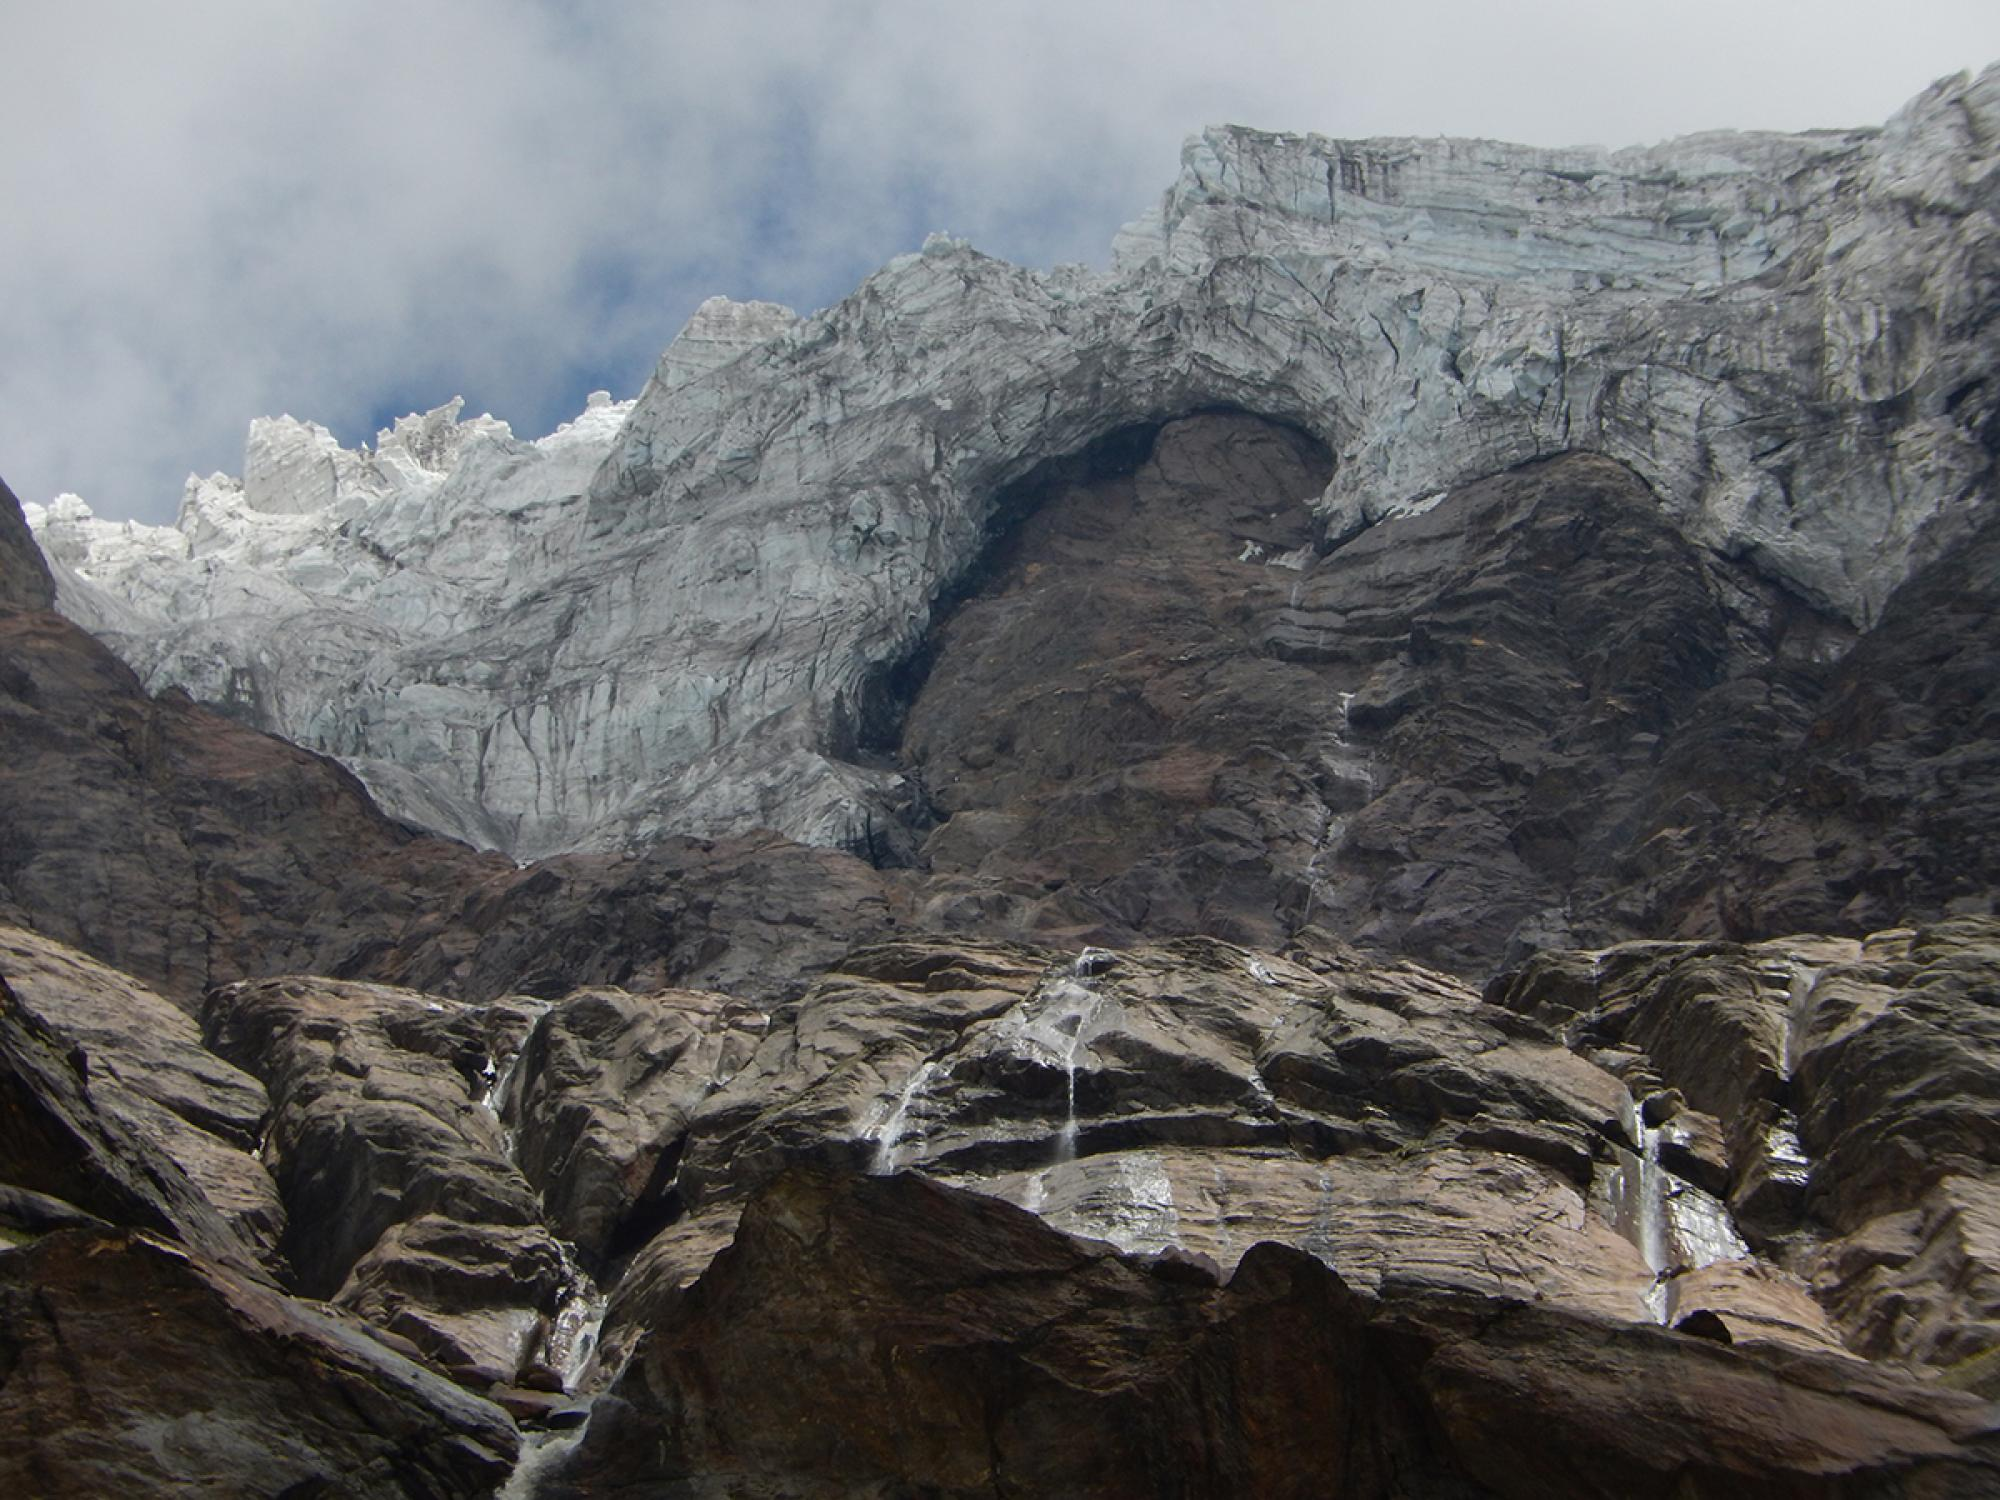 """The Hindu Kush Himalaya is commonly described as the """"water tower of Asia."""" In the HIMAP chapter on water, Scott and his co-authors wrote that the mountains """"provide two billion people a vital regional lifeline via water for food, water for energy, and wa"""